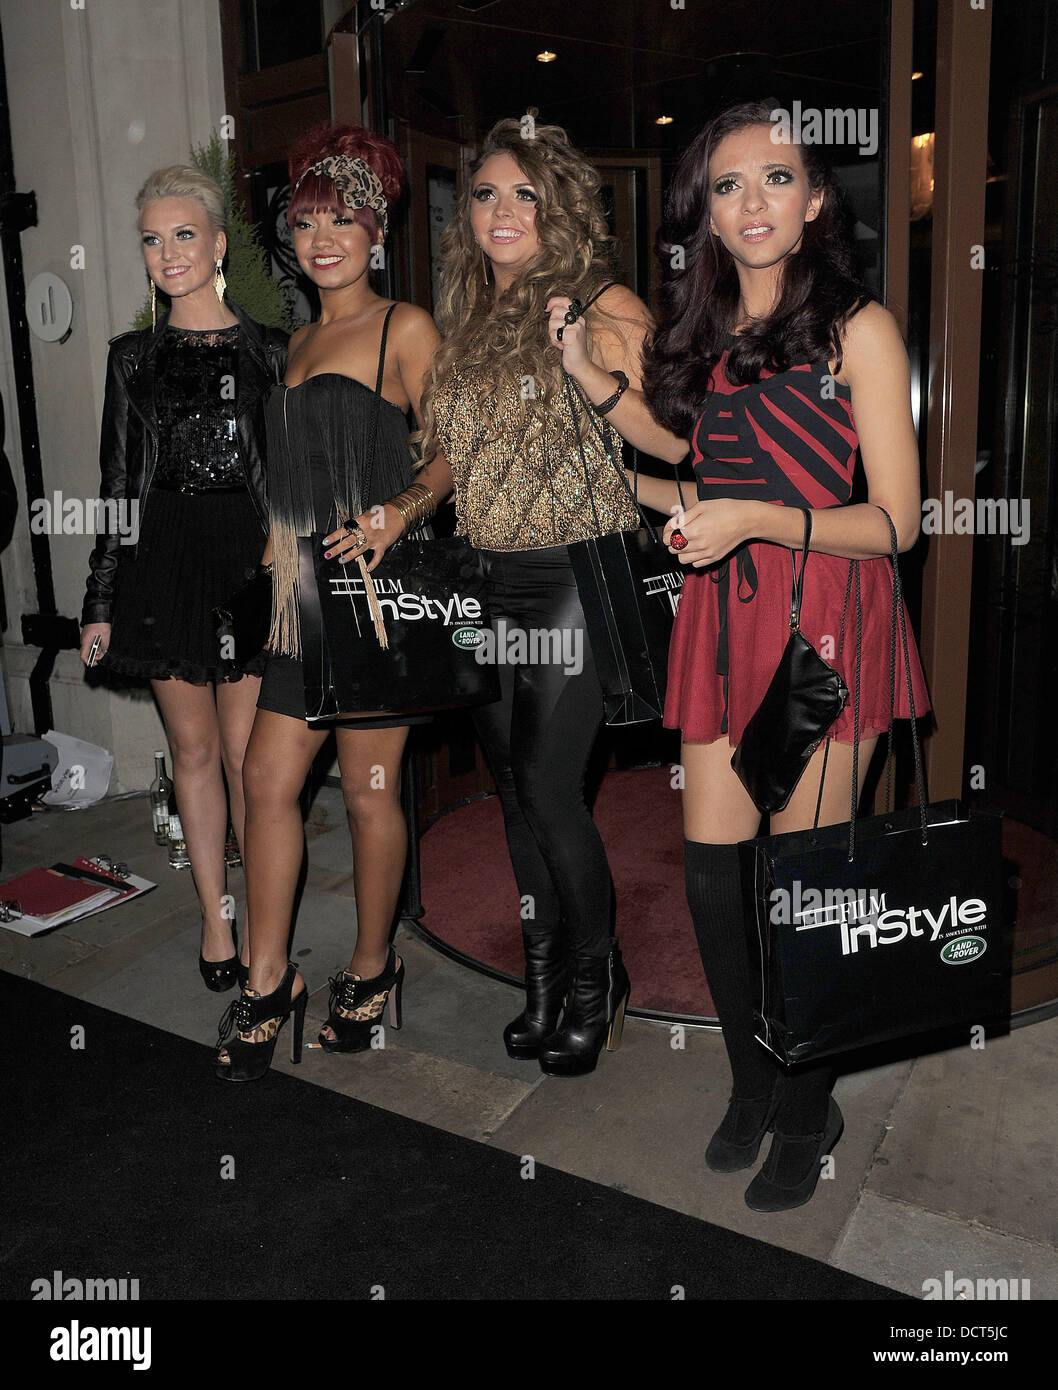 Little Mix Band Members Perrie Edwards Jade Thirlwall Jesy